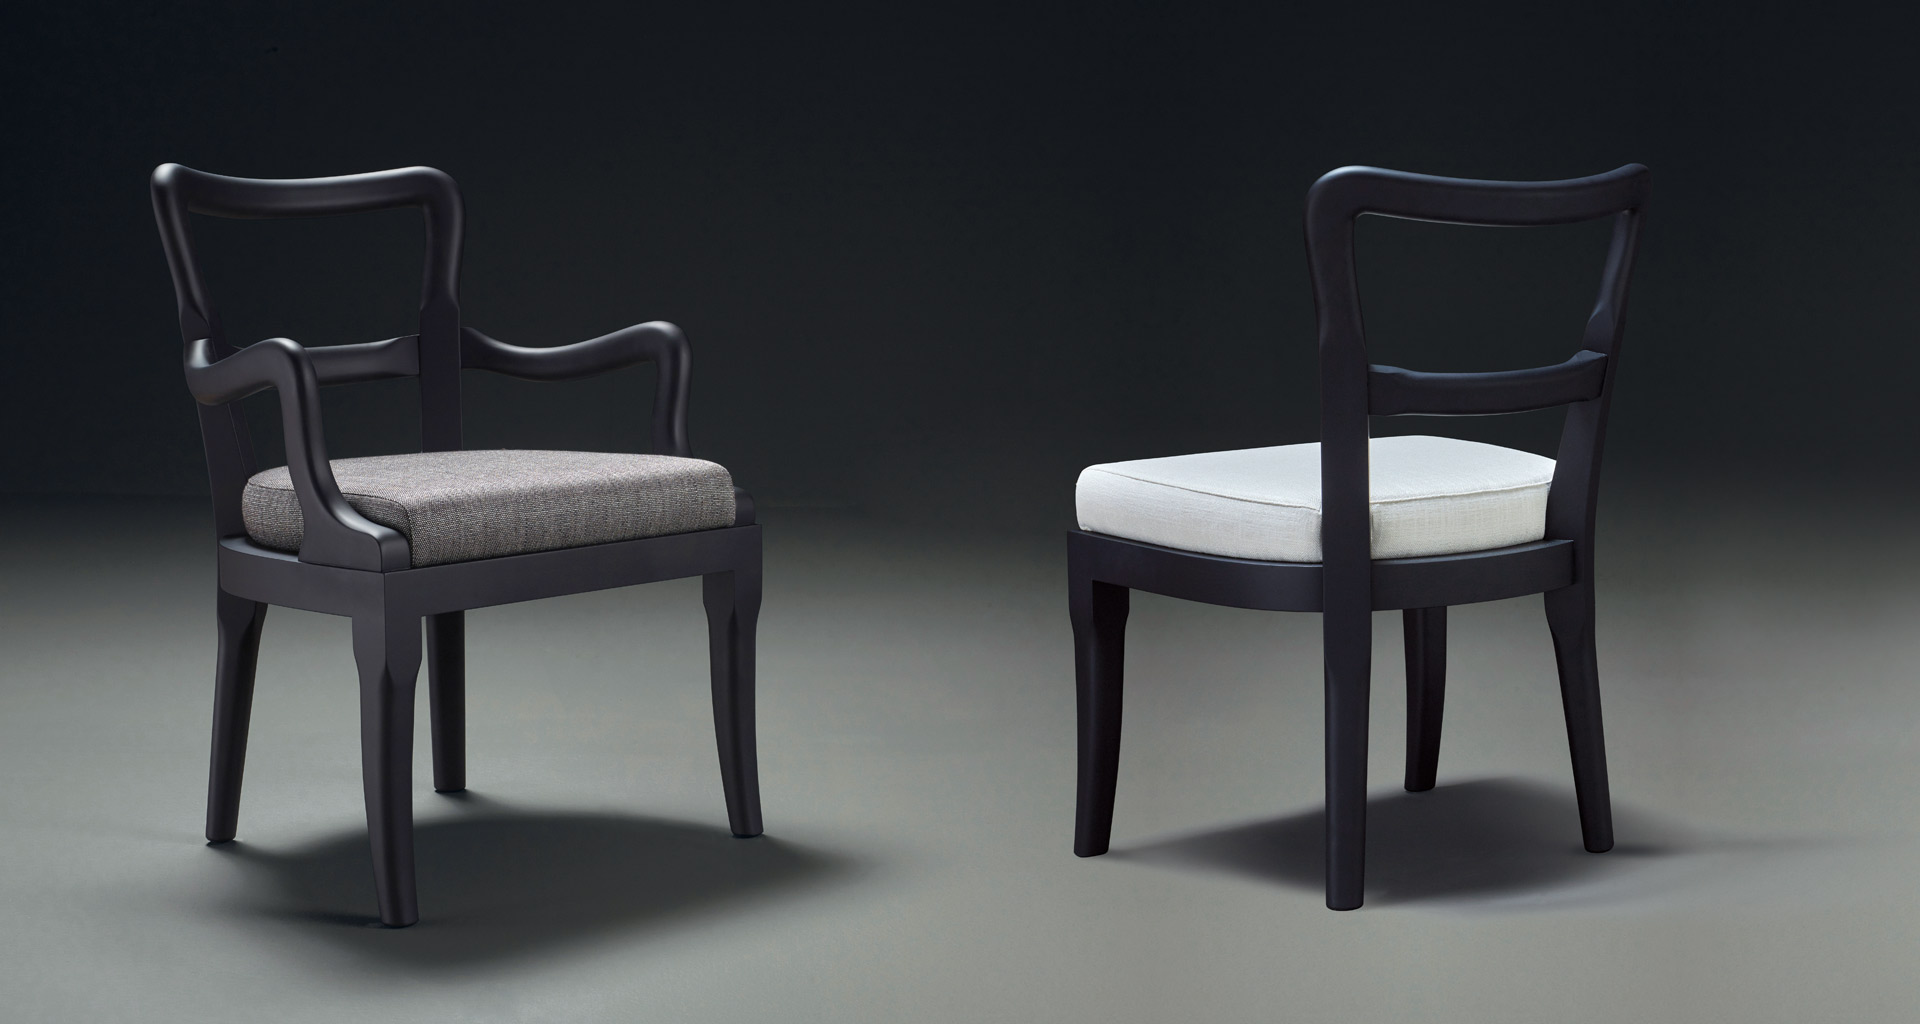 Sofia is a wooden dining chair with fabric or leather seat and with or without armrests, from Promemoria's catalogue | Promemoria